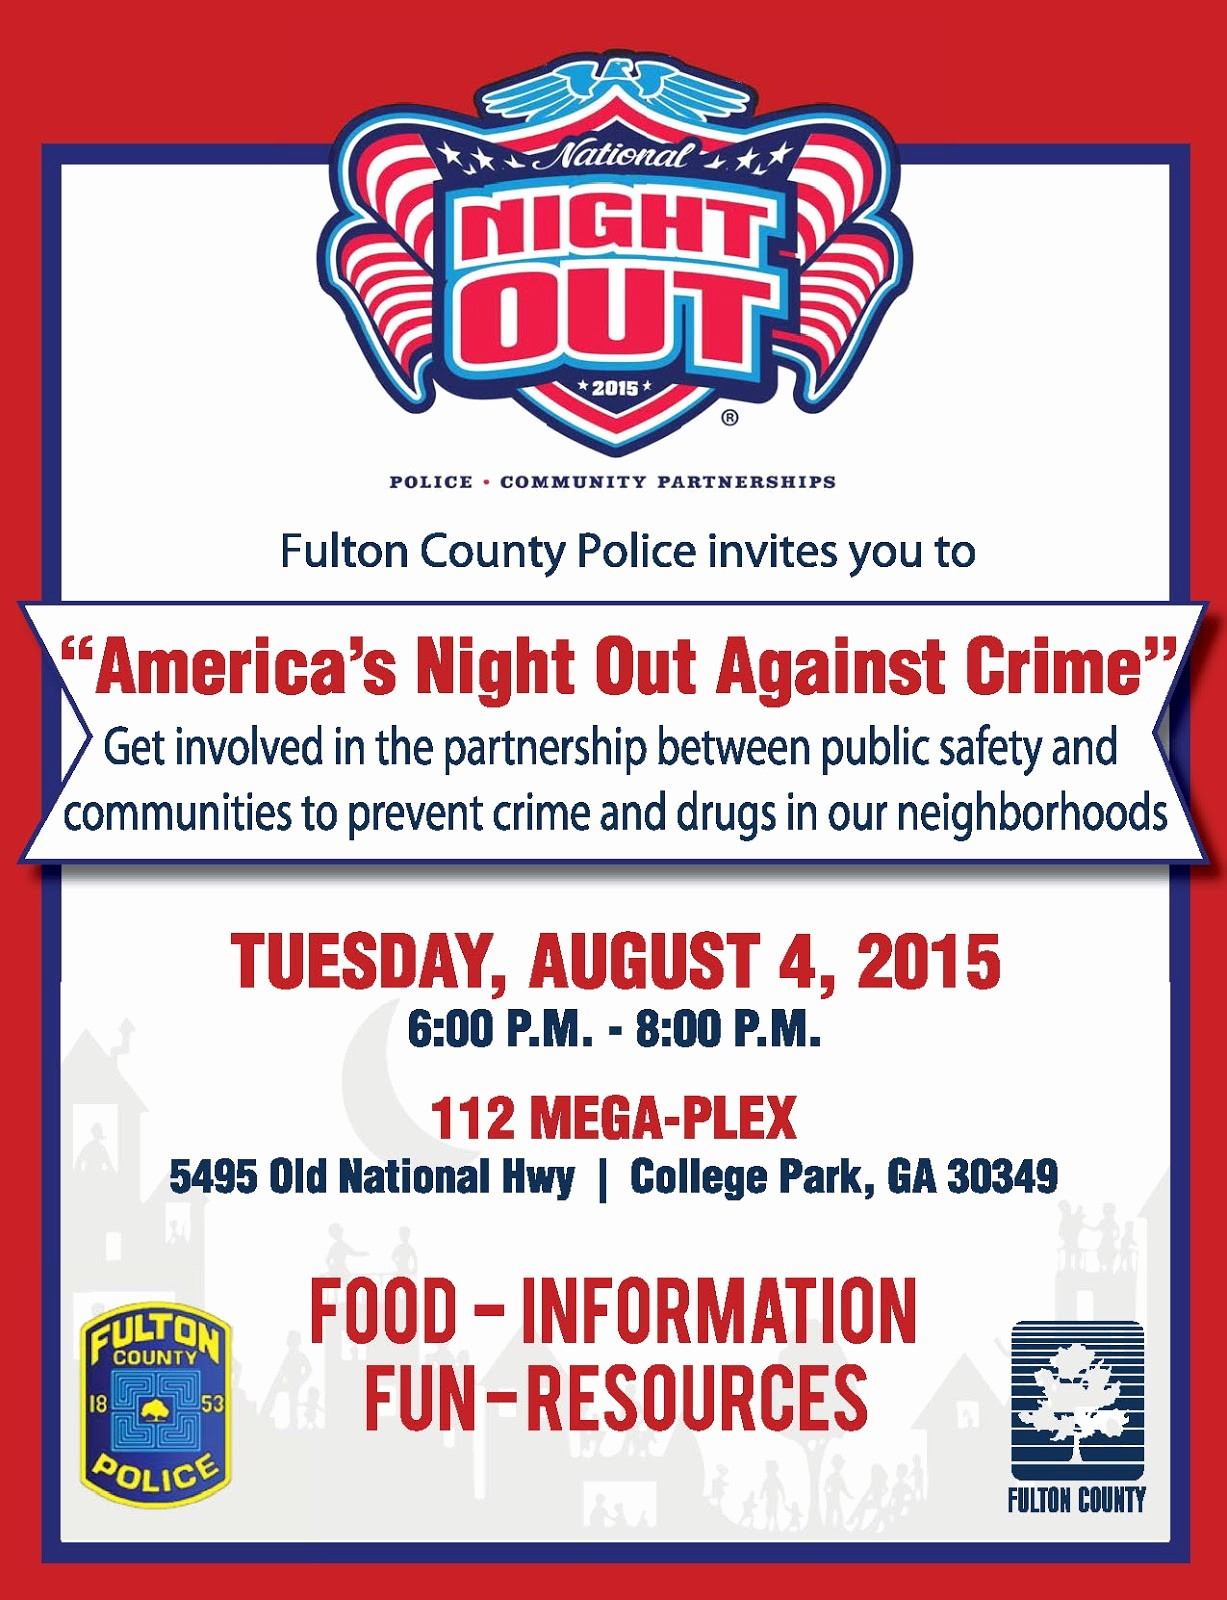 Parent Night Out Flyer Template Inspirational National Night Out Flyers Samples to Pin On